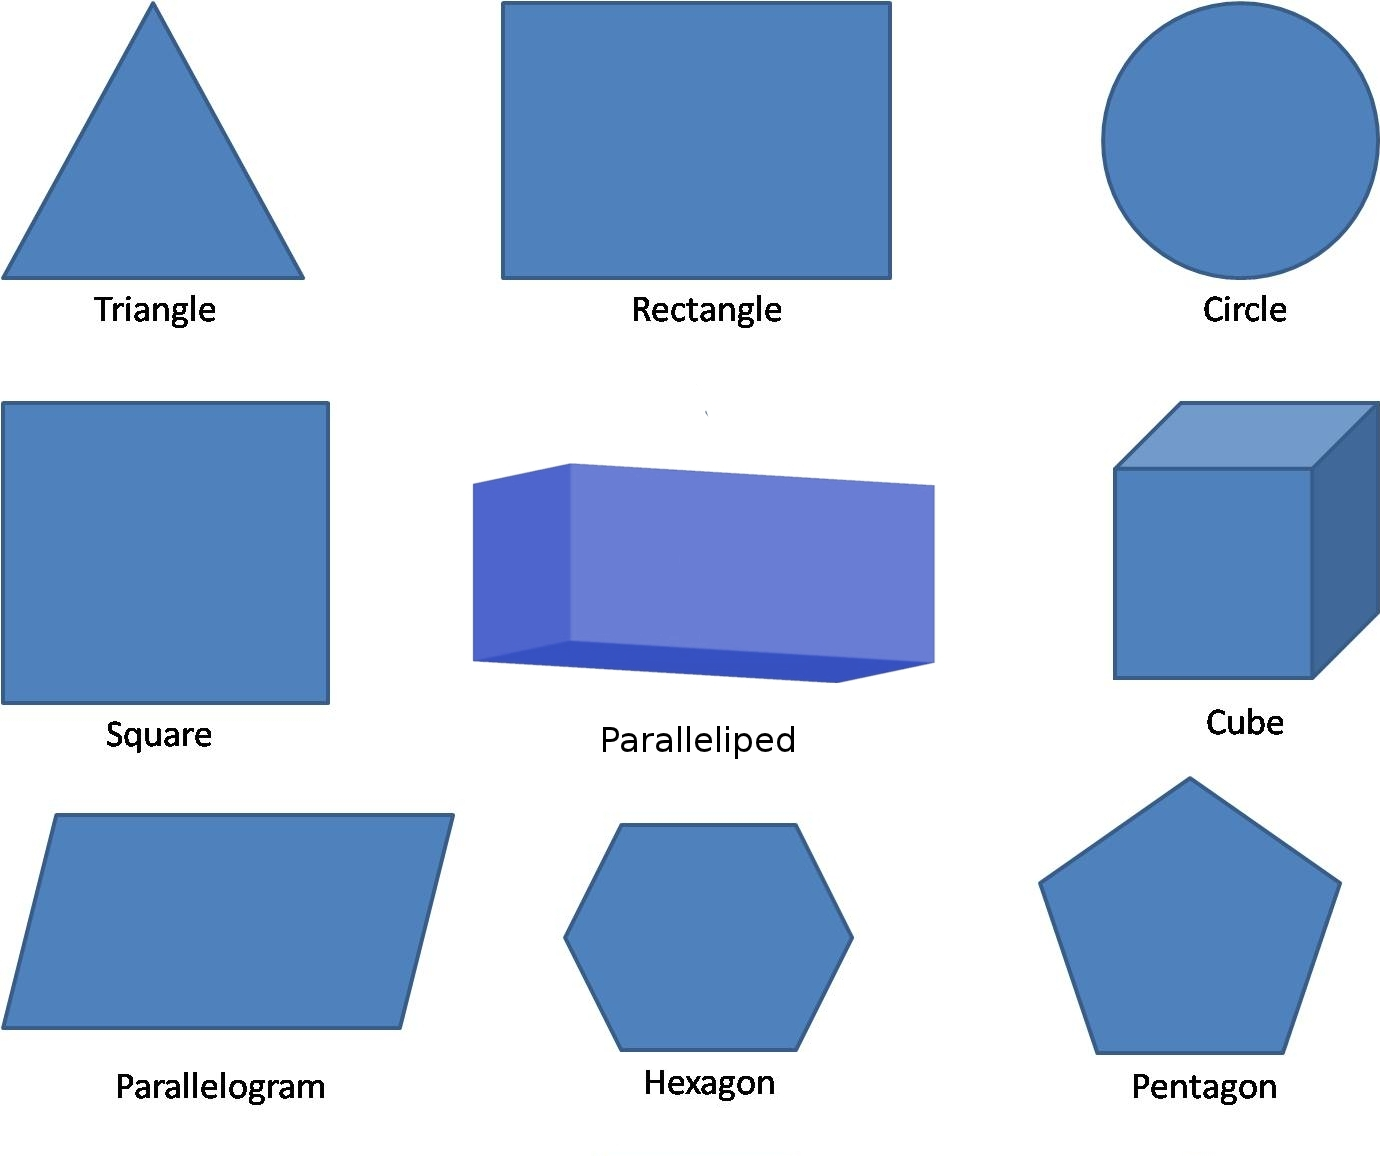 Name The Shapes Geometric Without Their Names